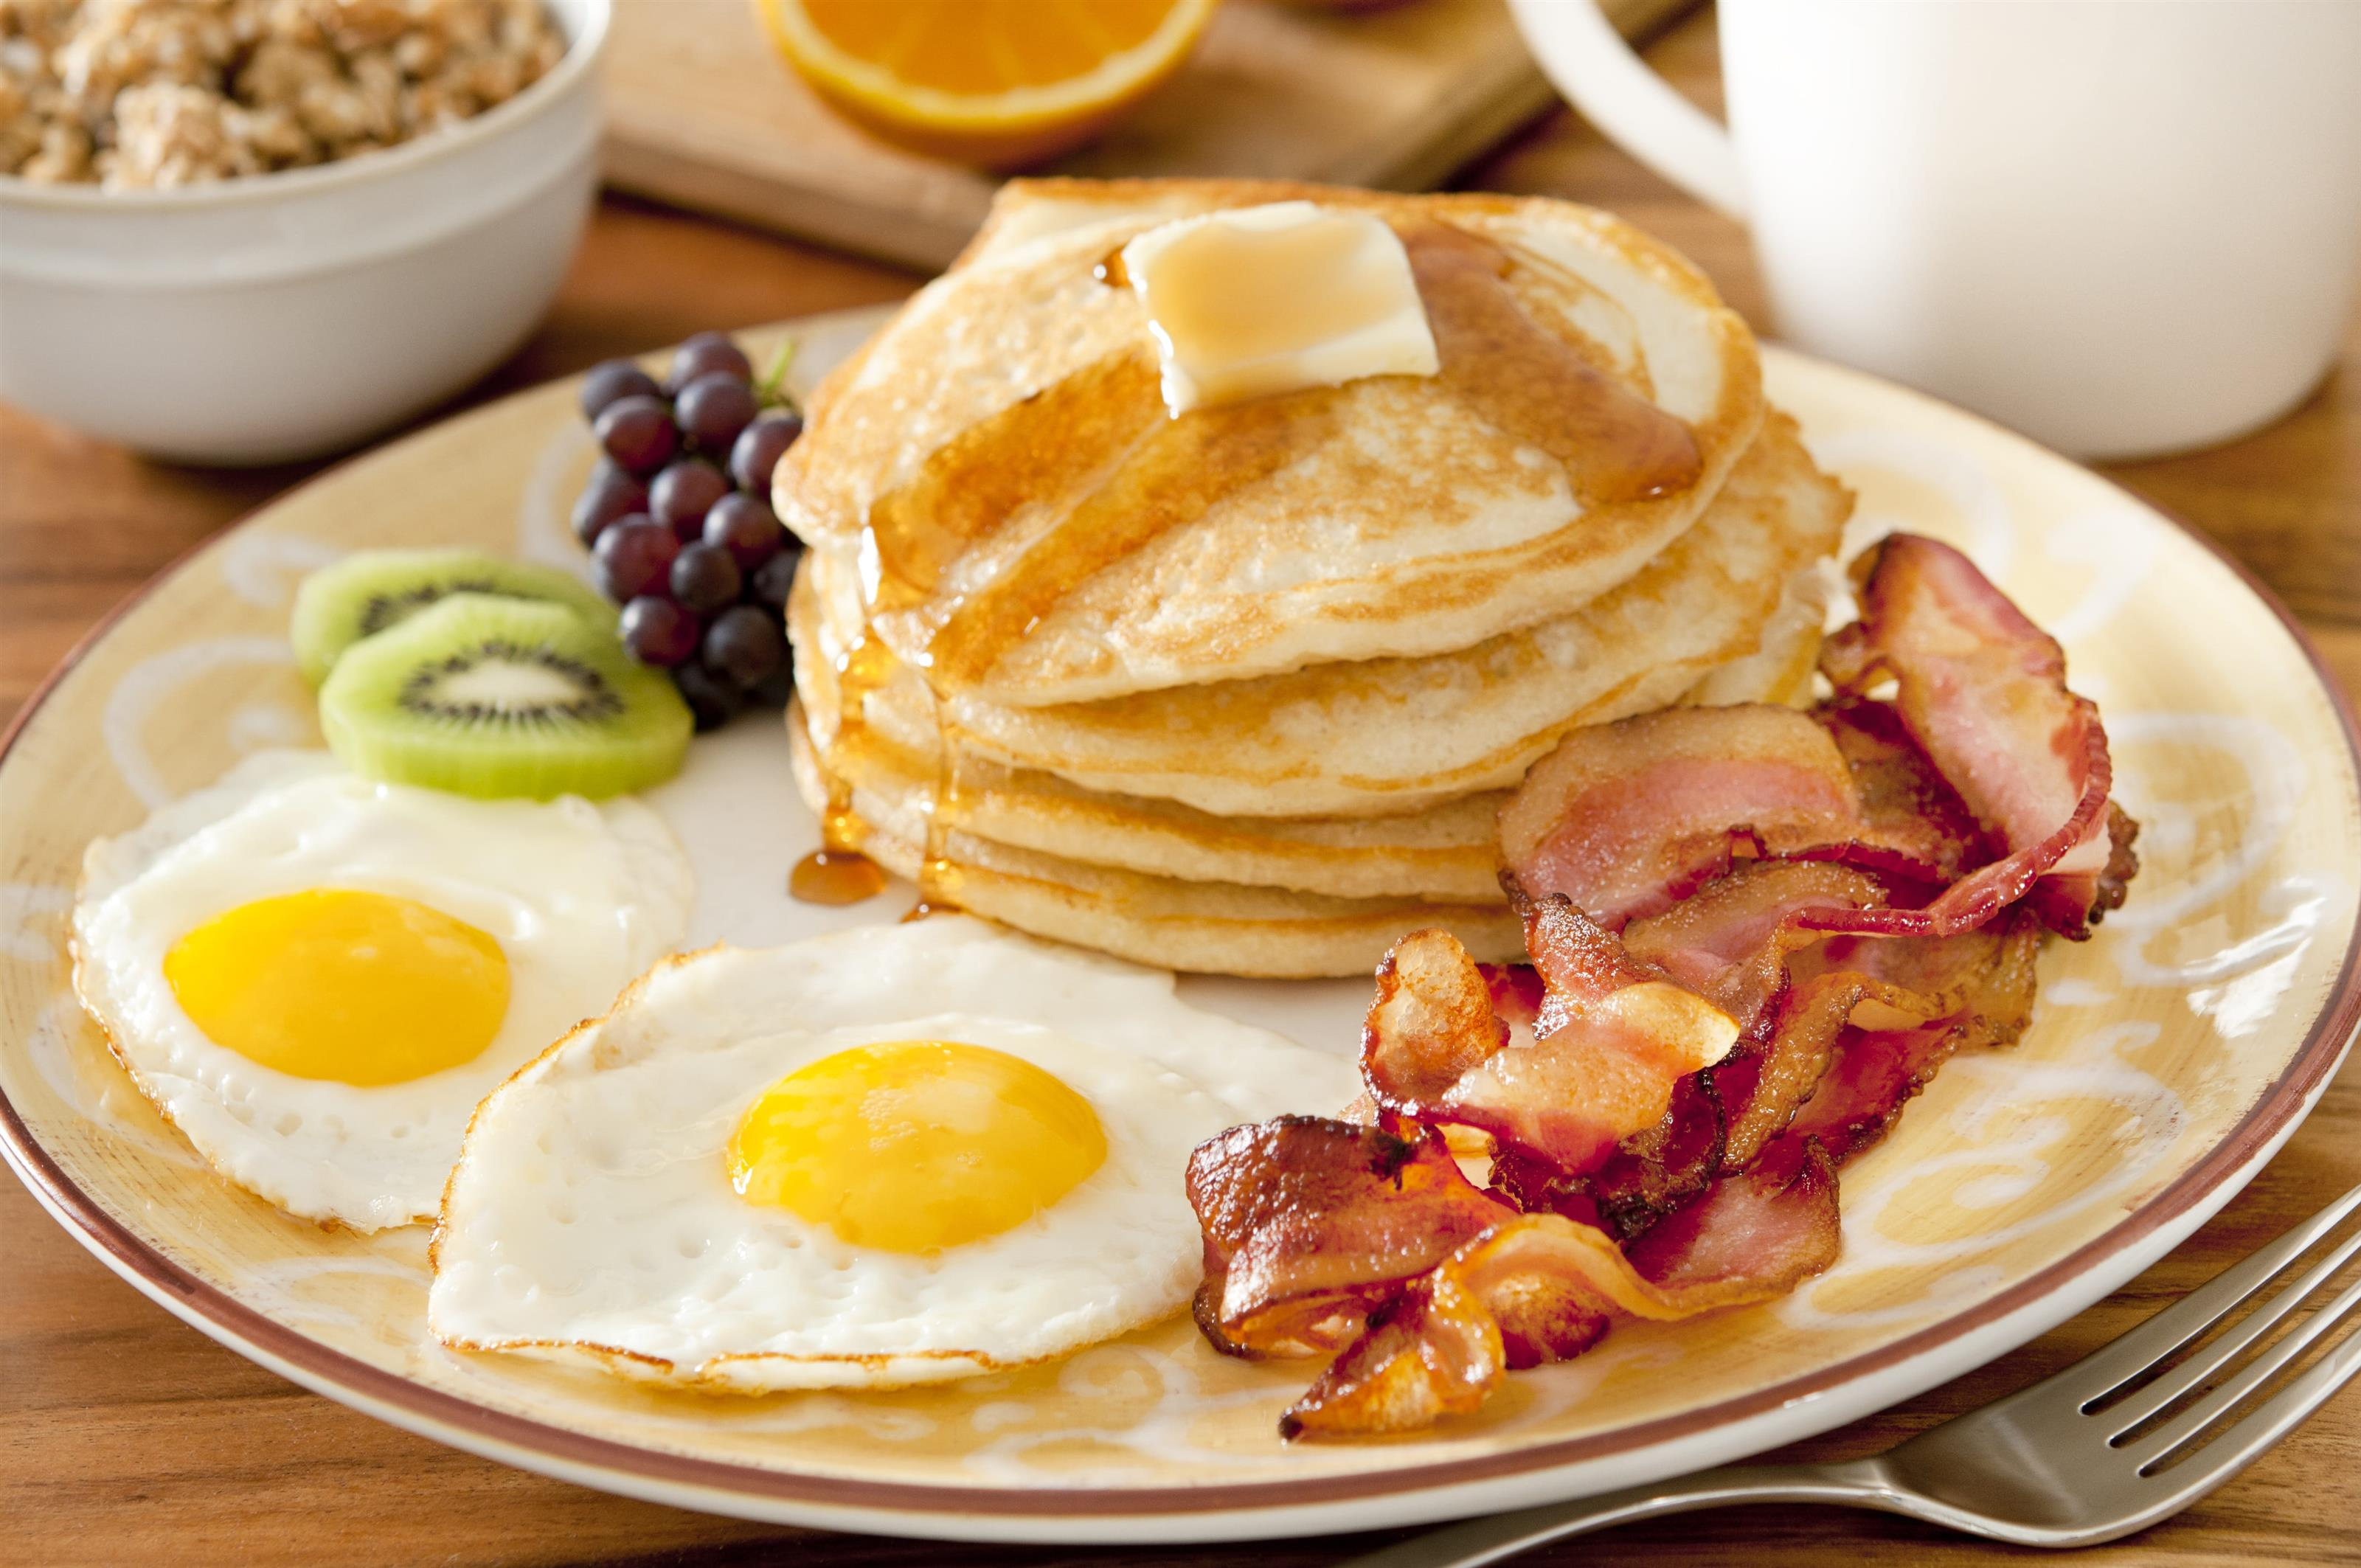 Closeup of a breakfast plate with pancakes, eggs, bacon and fruit